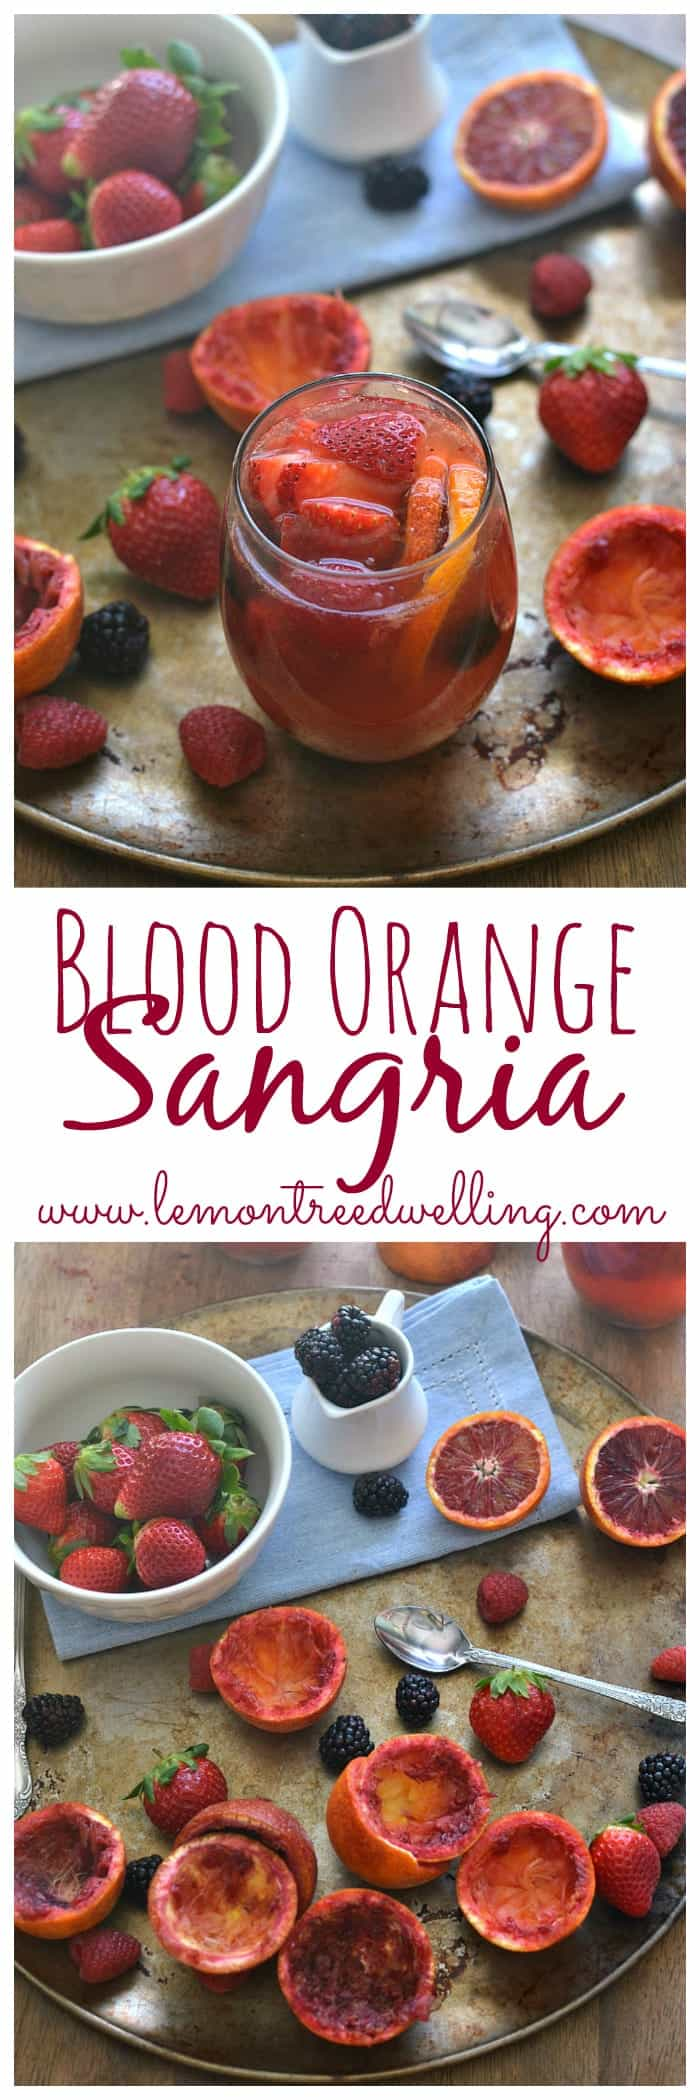 This Blood Orange Sangria is made with white wine, rum, and triple sec and garnished with fresh berries